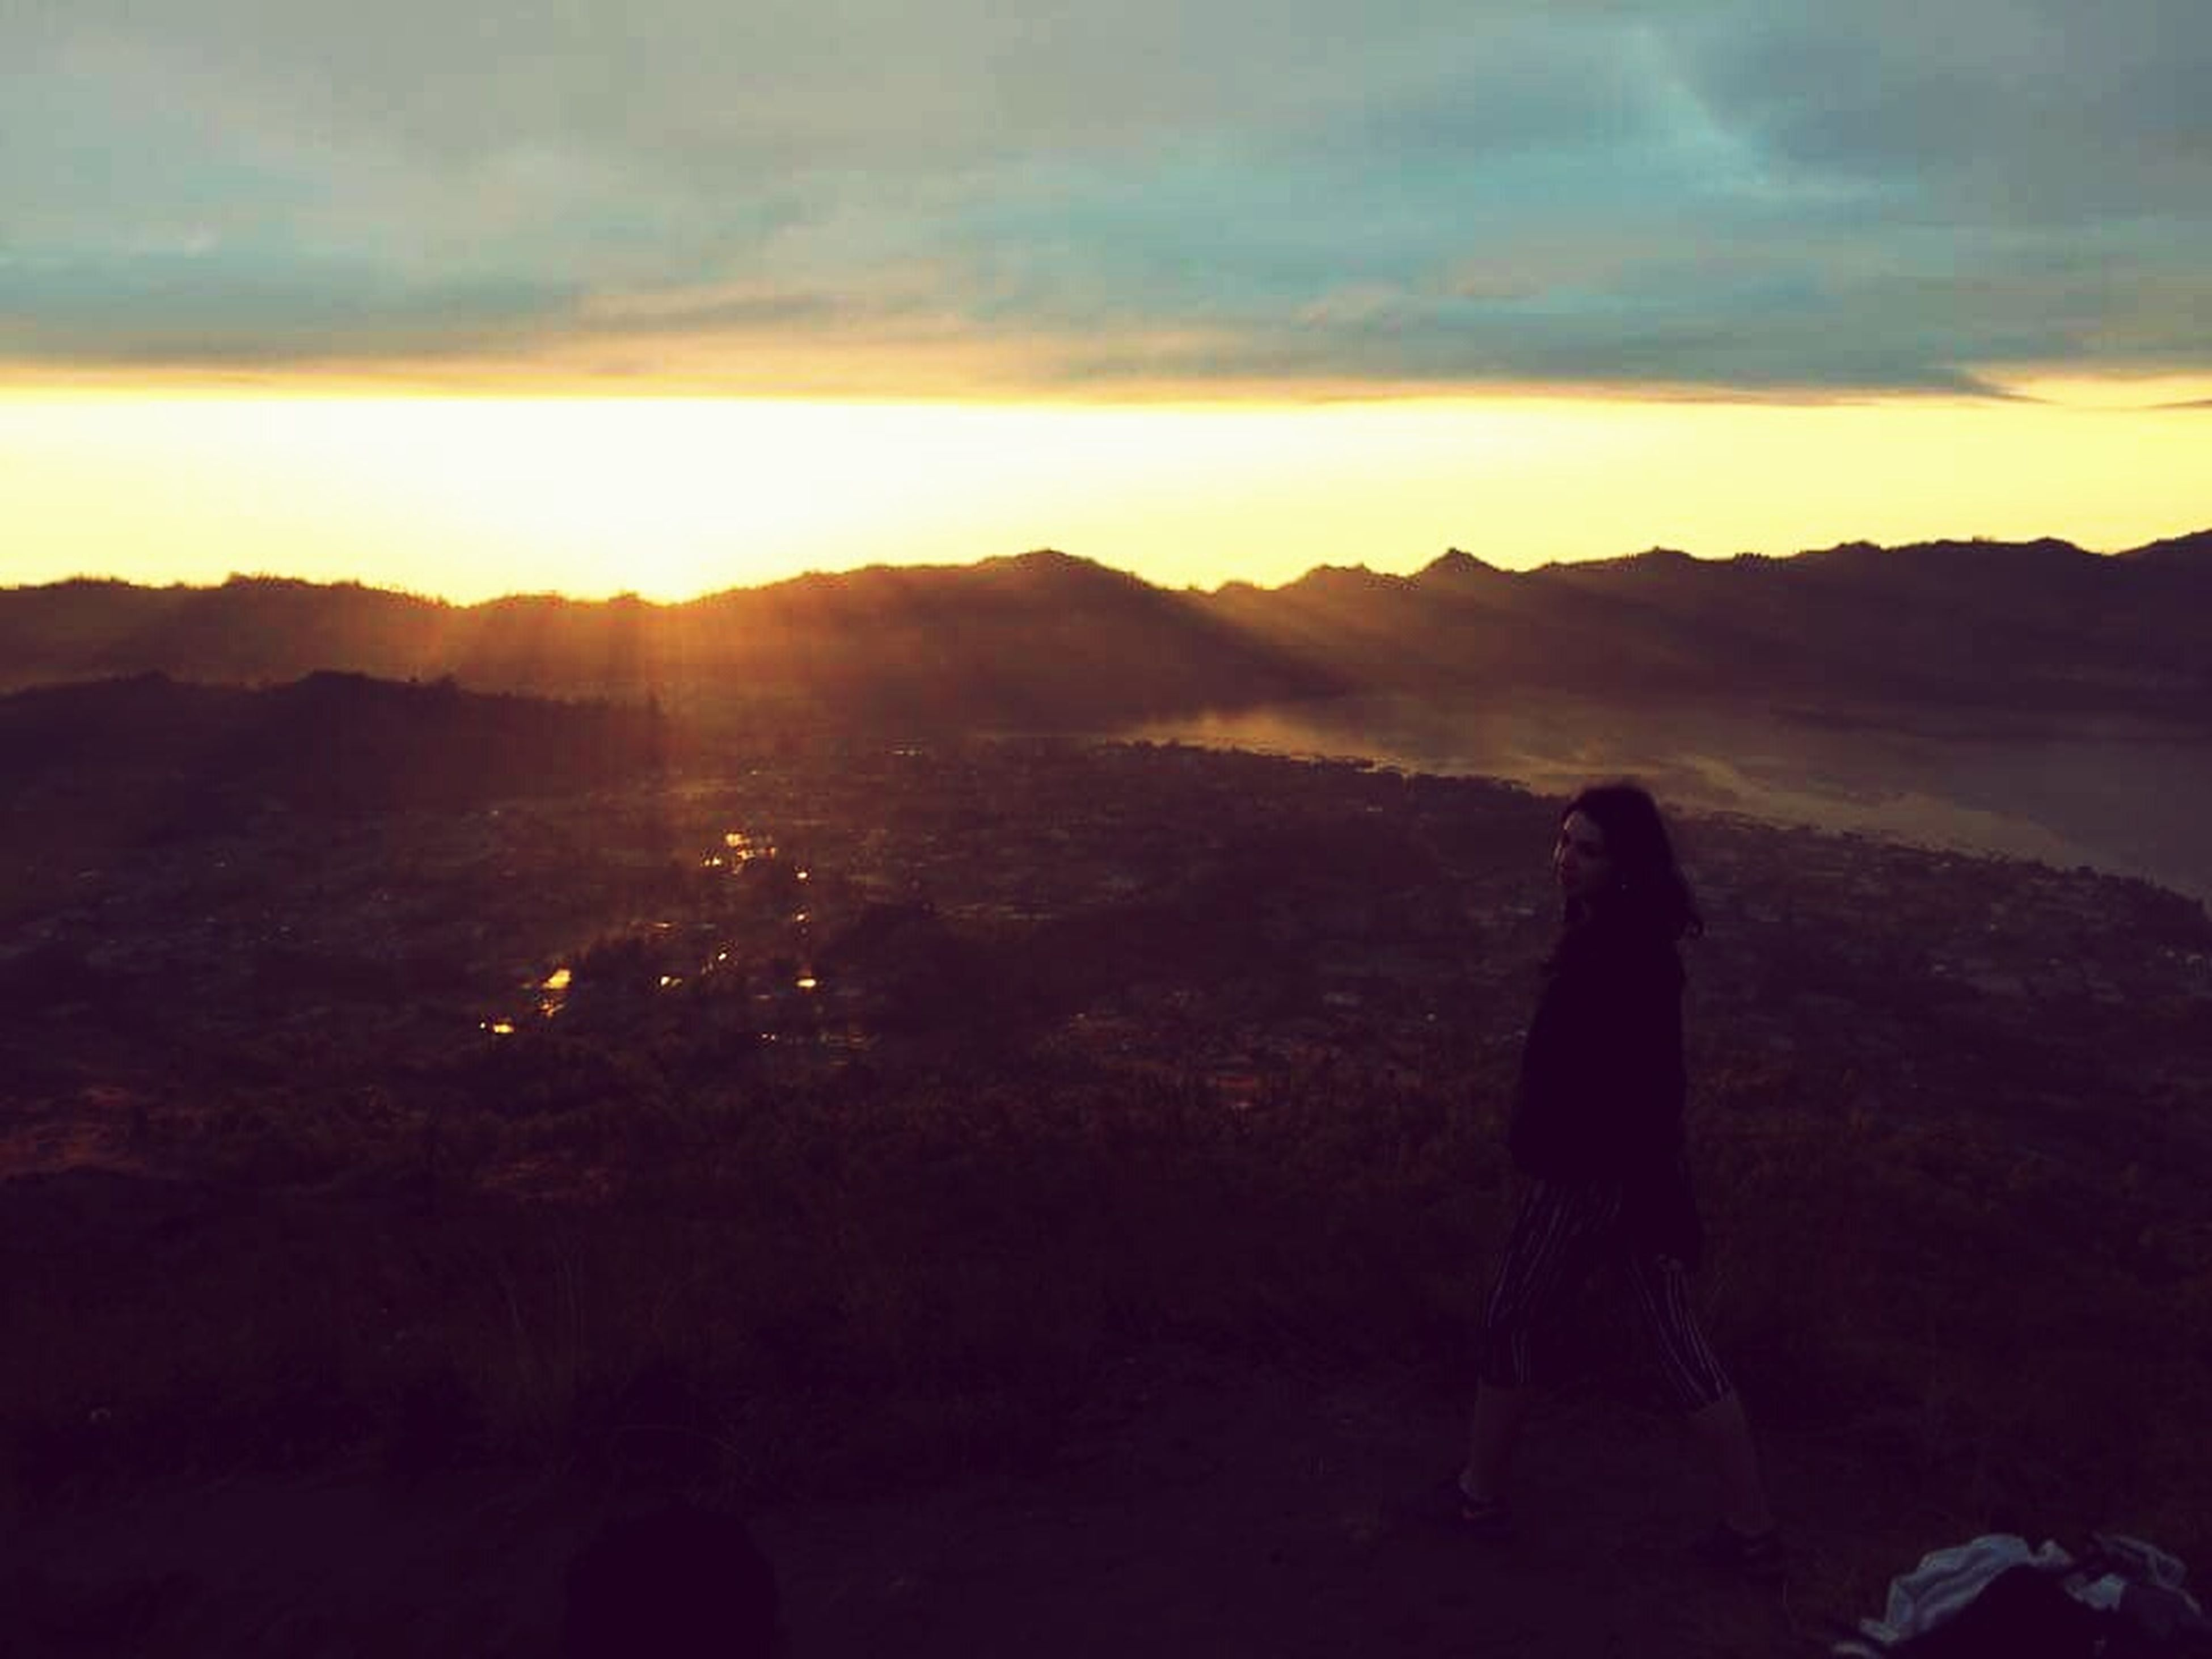 sunset, silhouette, sky, mountain, cloud - sky, scenics, tranquil scene, lifestyles, standing, men, beauty in nature, tranquility, leisure activity, landscape, nature, person, rock - object, sun